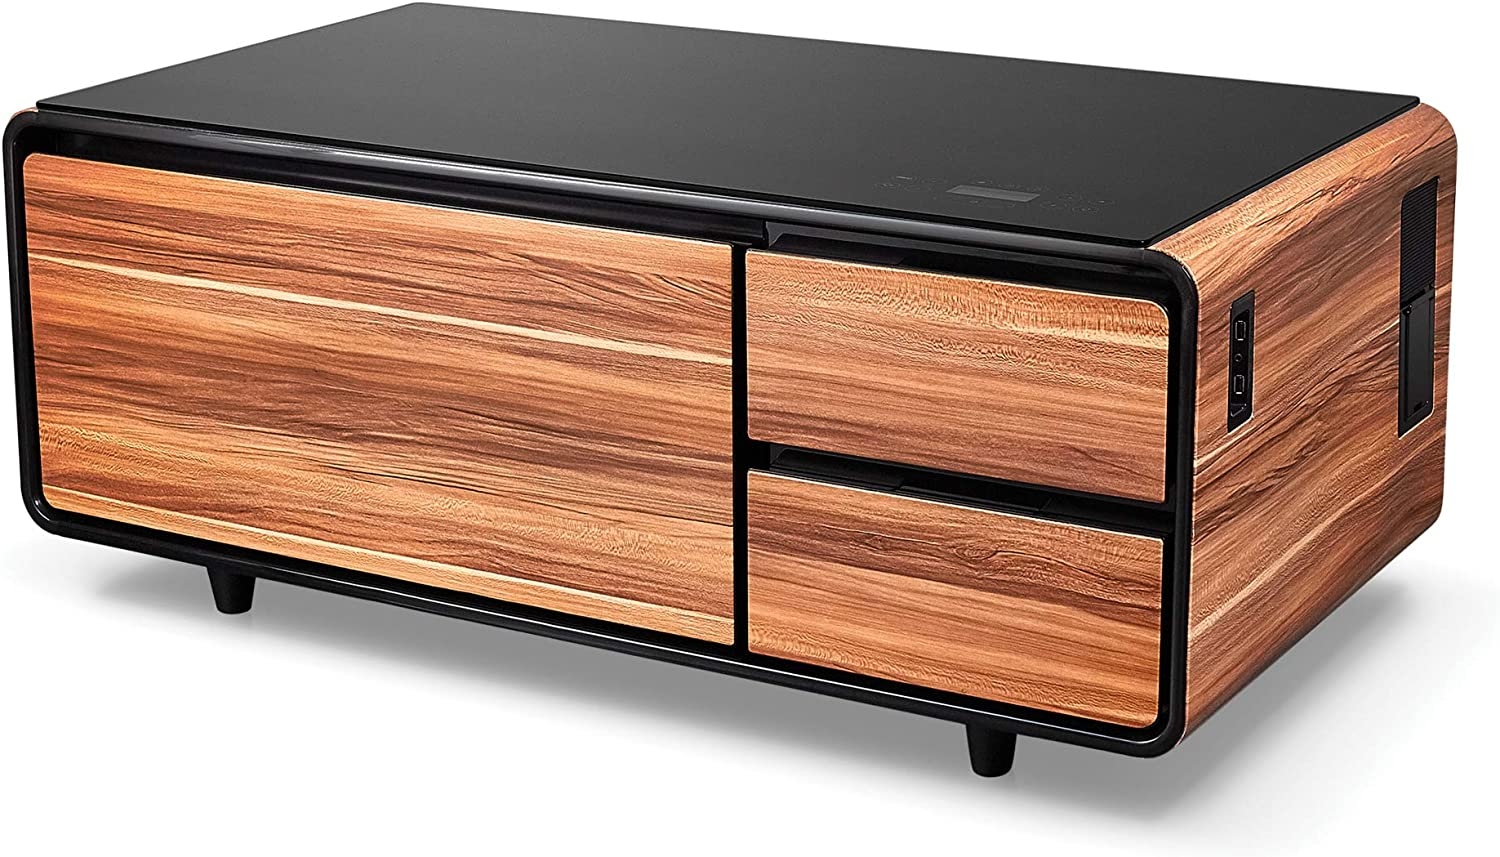 Amazon Com Sobro Coffee Table With Refrigerator Drawer Bluetooth Speakers Led Lights Usb Charging Ports For Tablets Laptops Or A Cell Phone Perfect For Parties Or Entertaining Wood Kitchen Dining